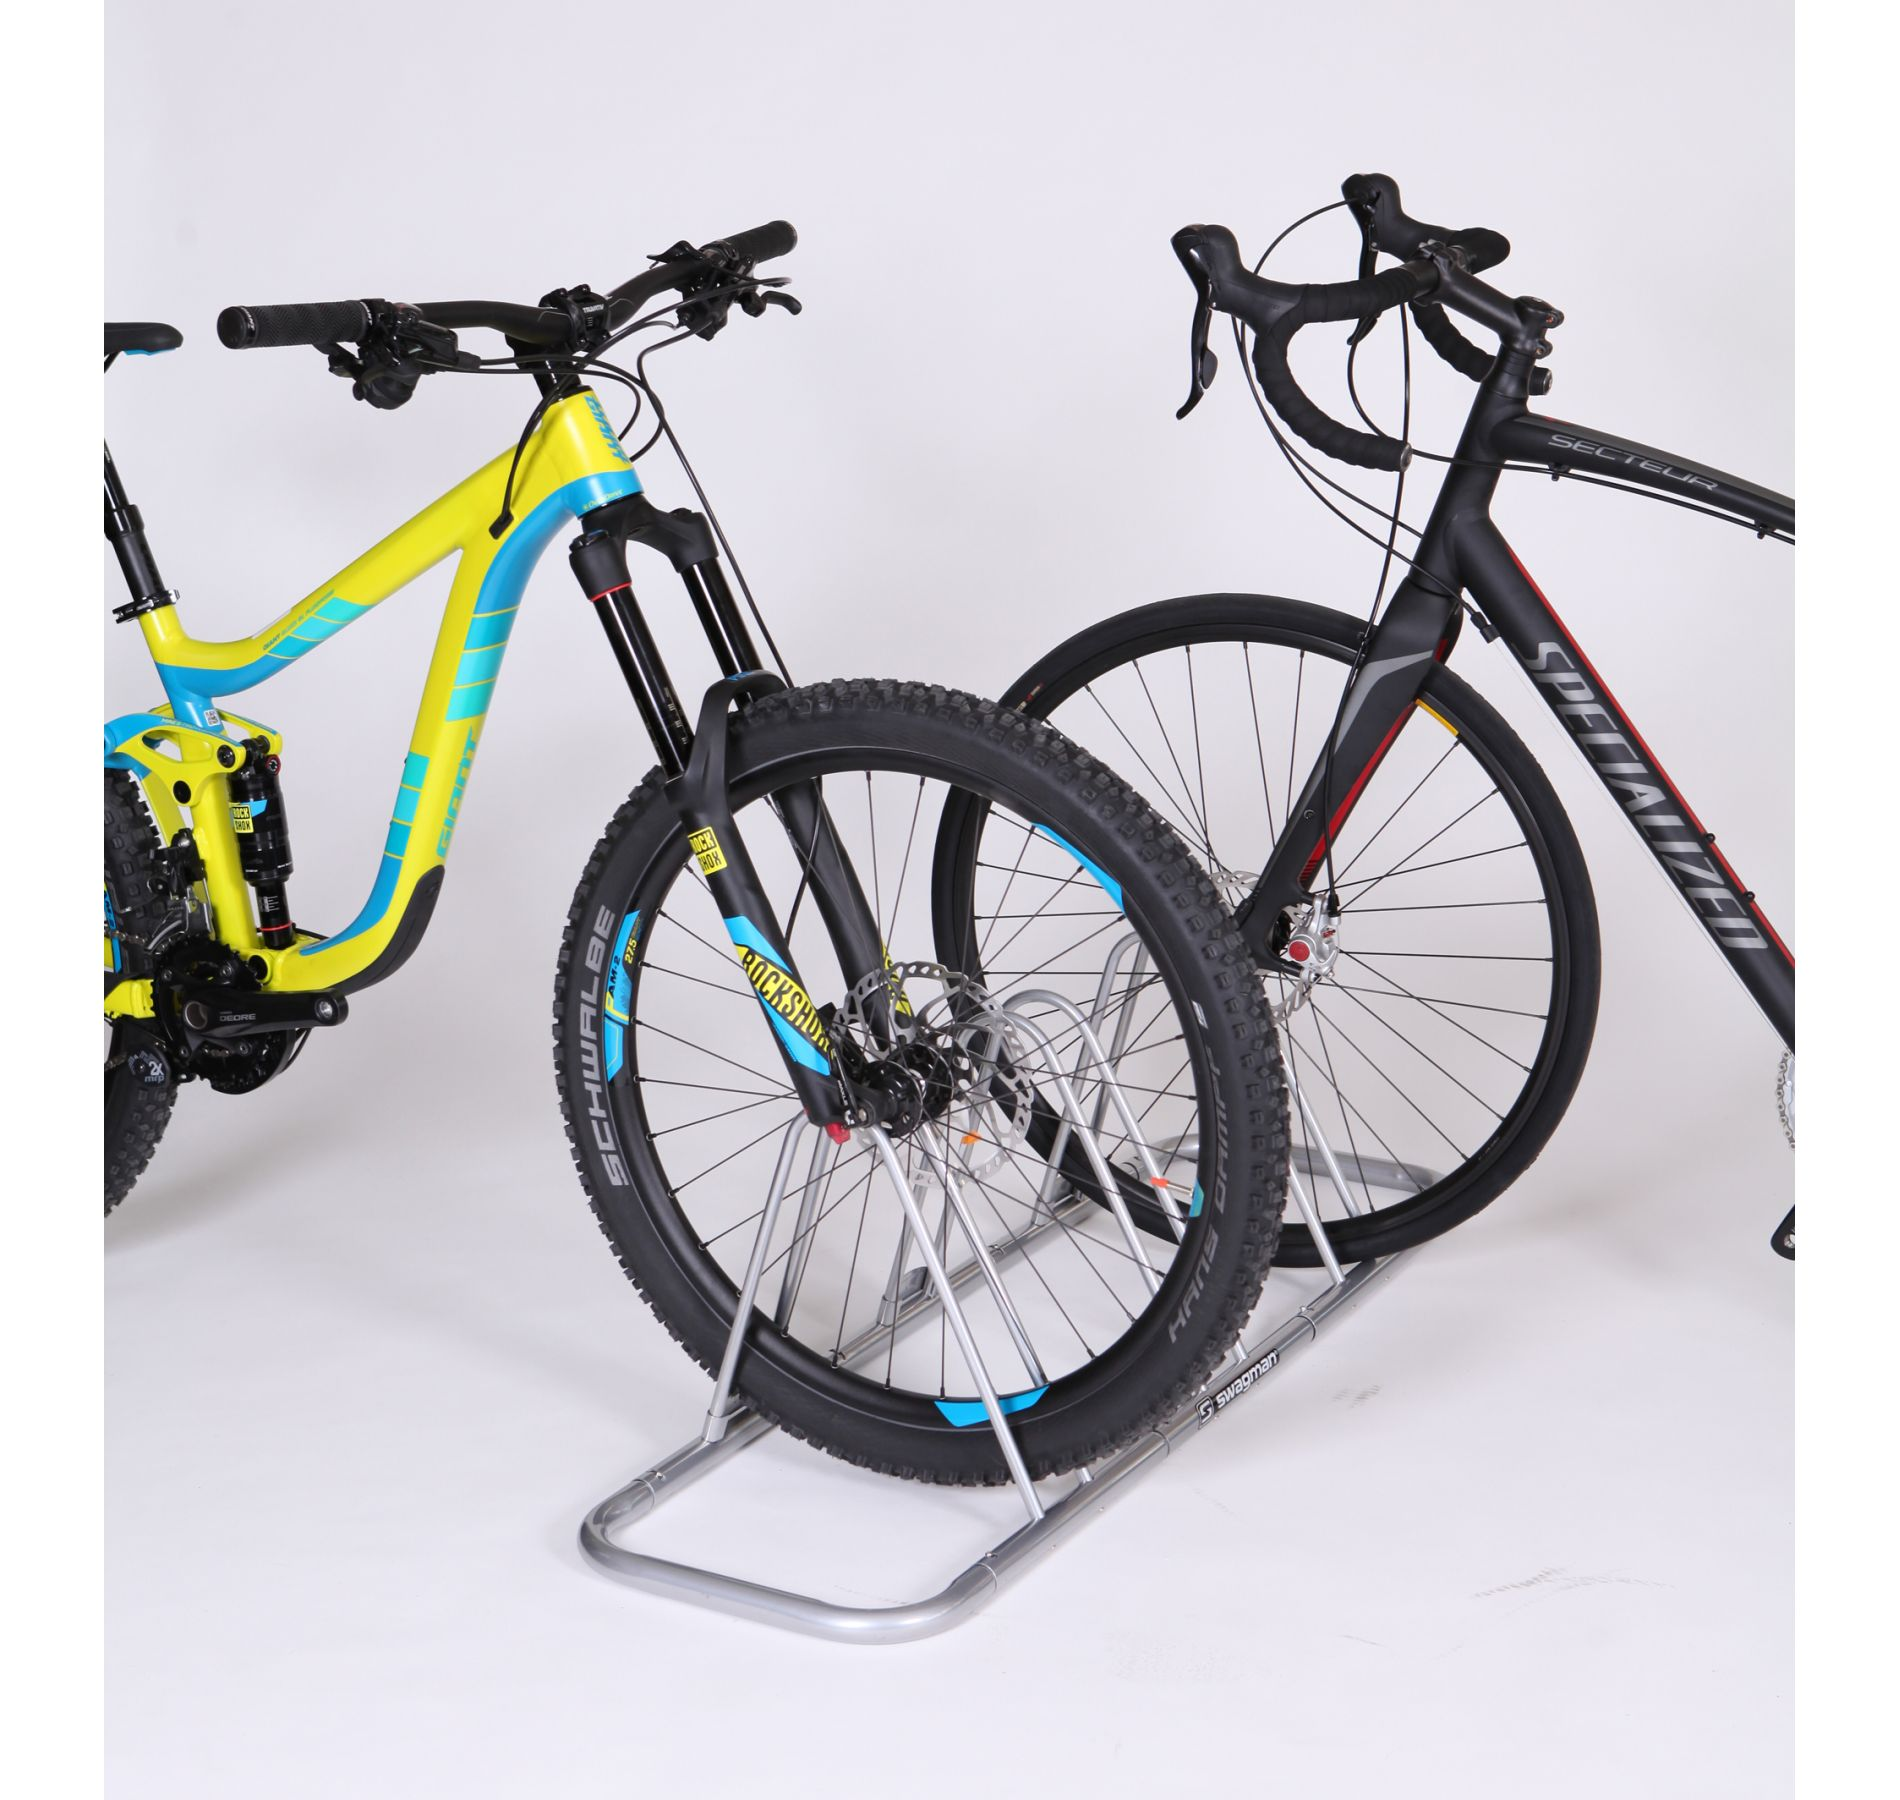 Swagman Park-it 3 Bike Storage Stand